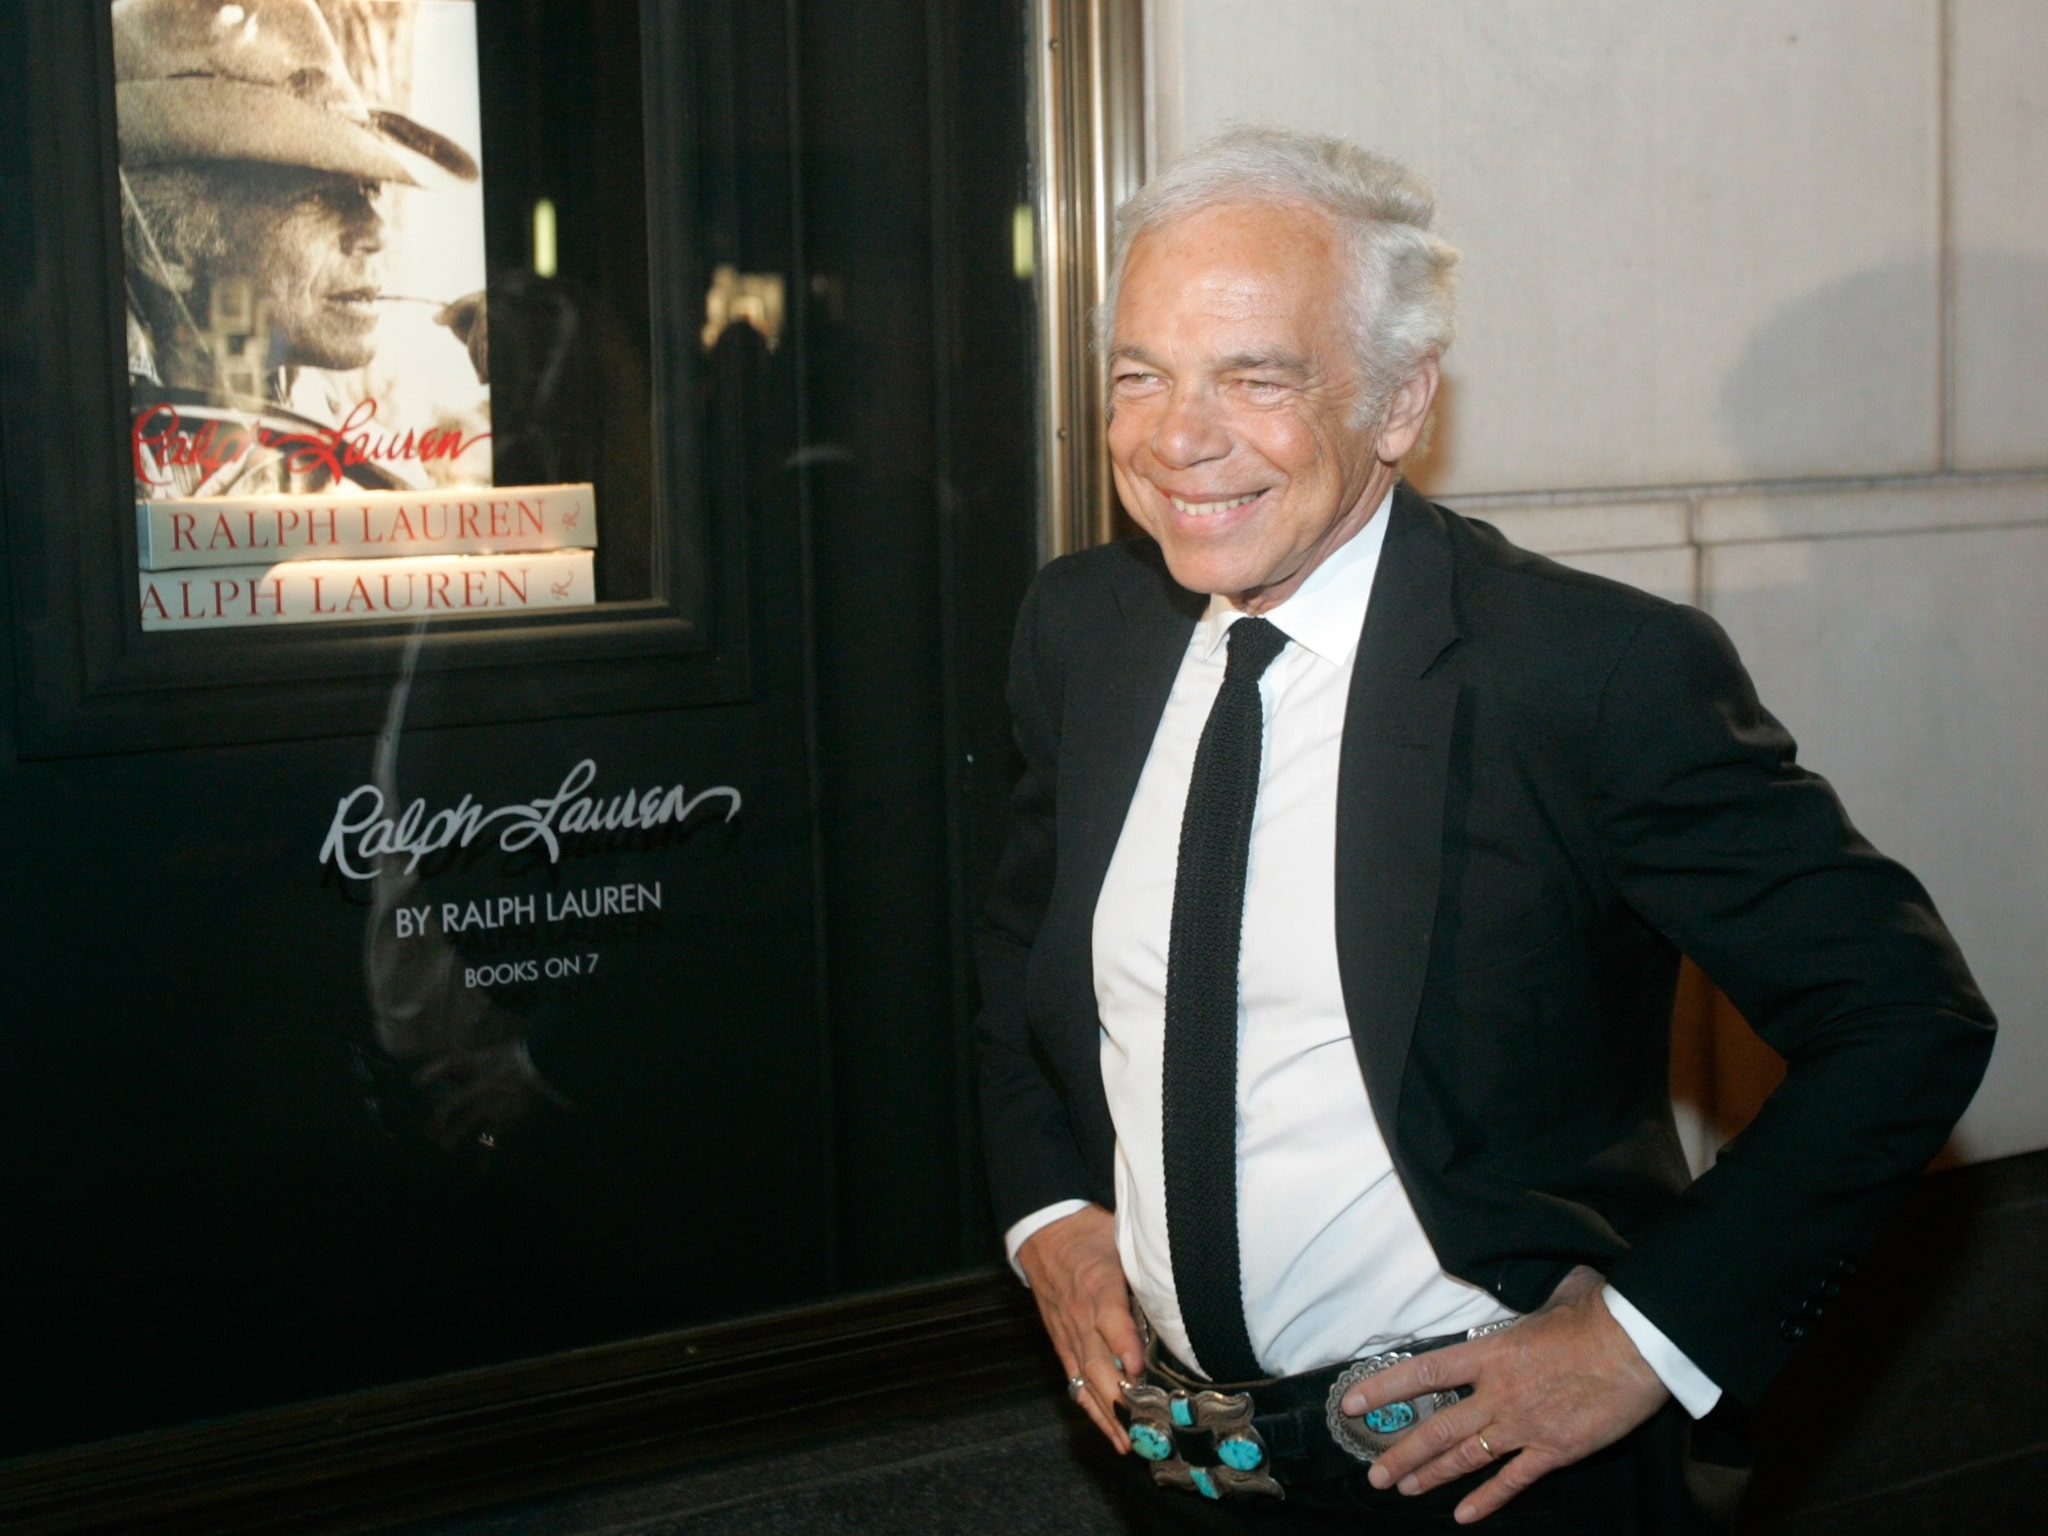 Ralph Lauren Net Worth, Bio 2017-2016, Wiki - REVISED! - Richest Celebrities